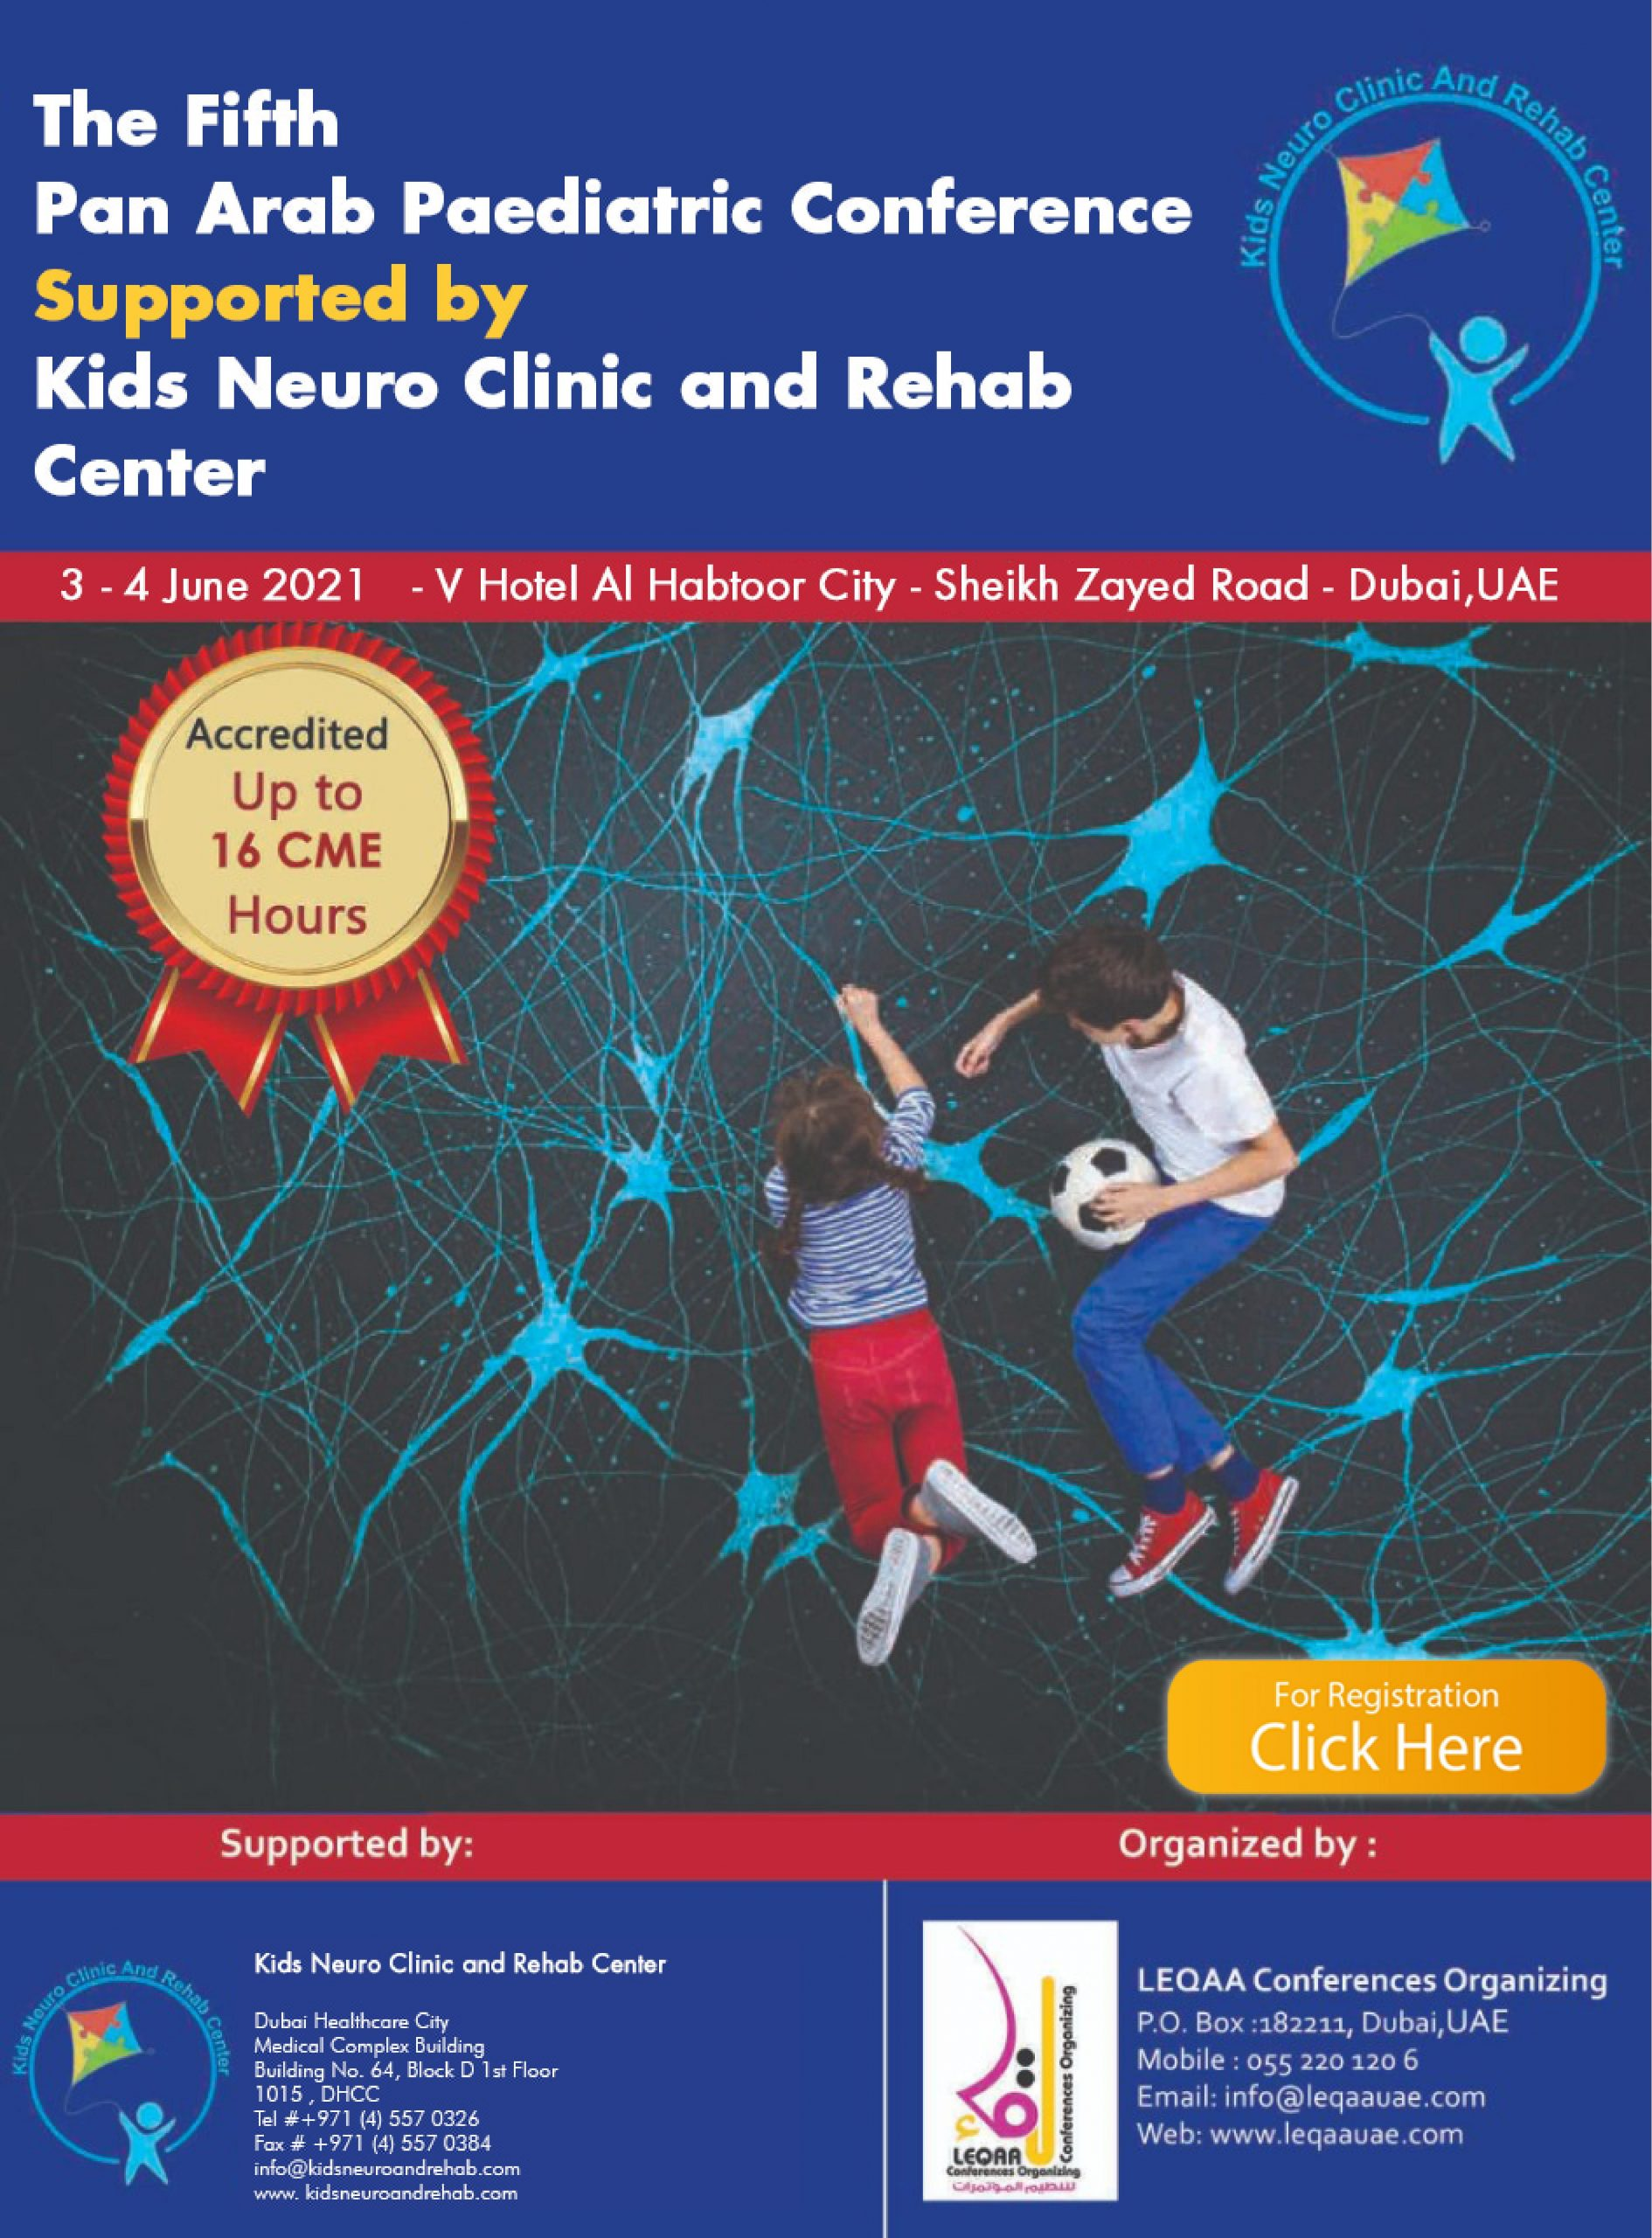 The Fifth Pan Arab Pediatric Conference Supported by Kids Neuro Clinic and Rehab Center